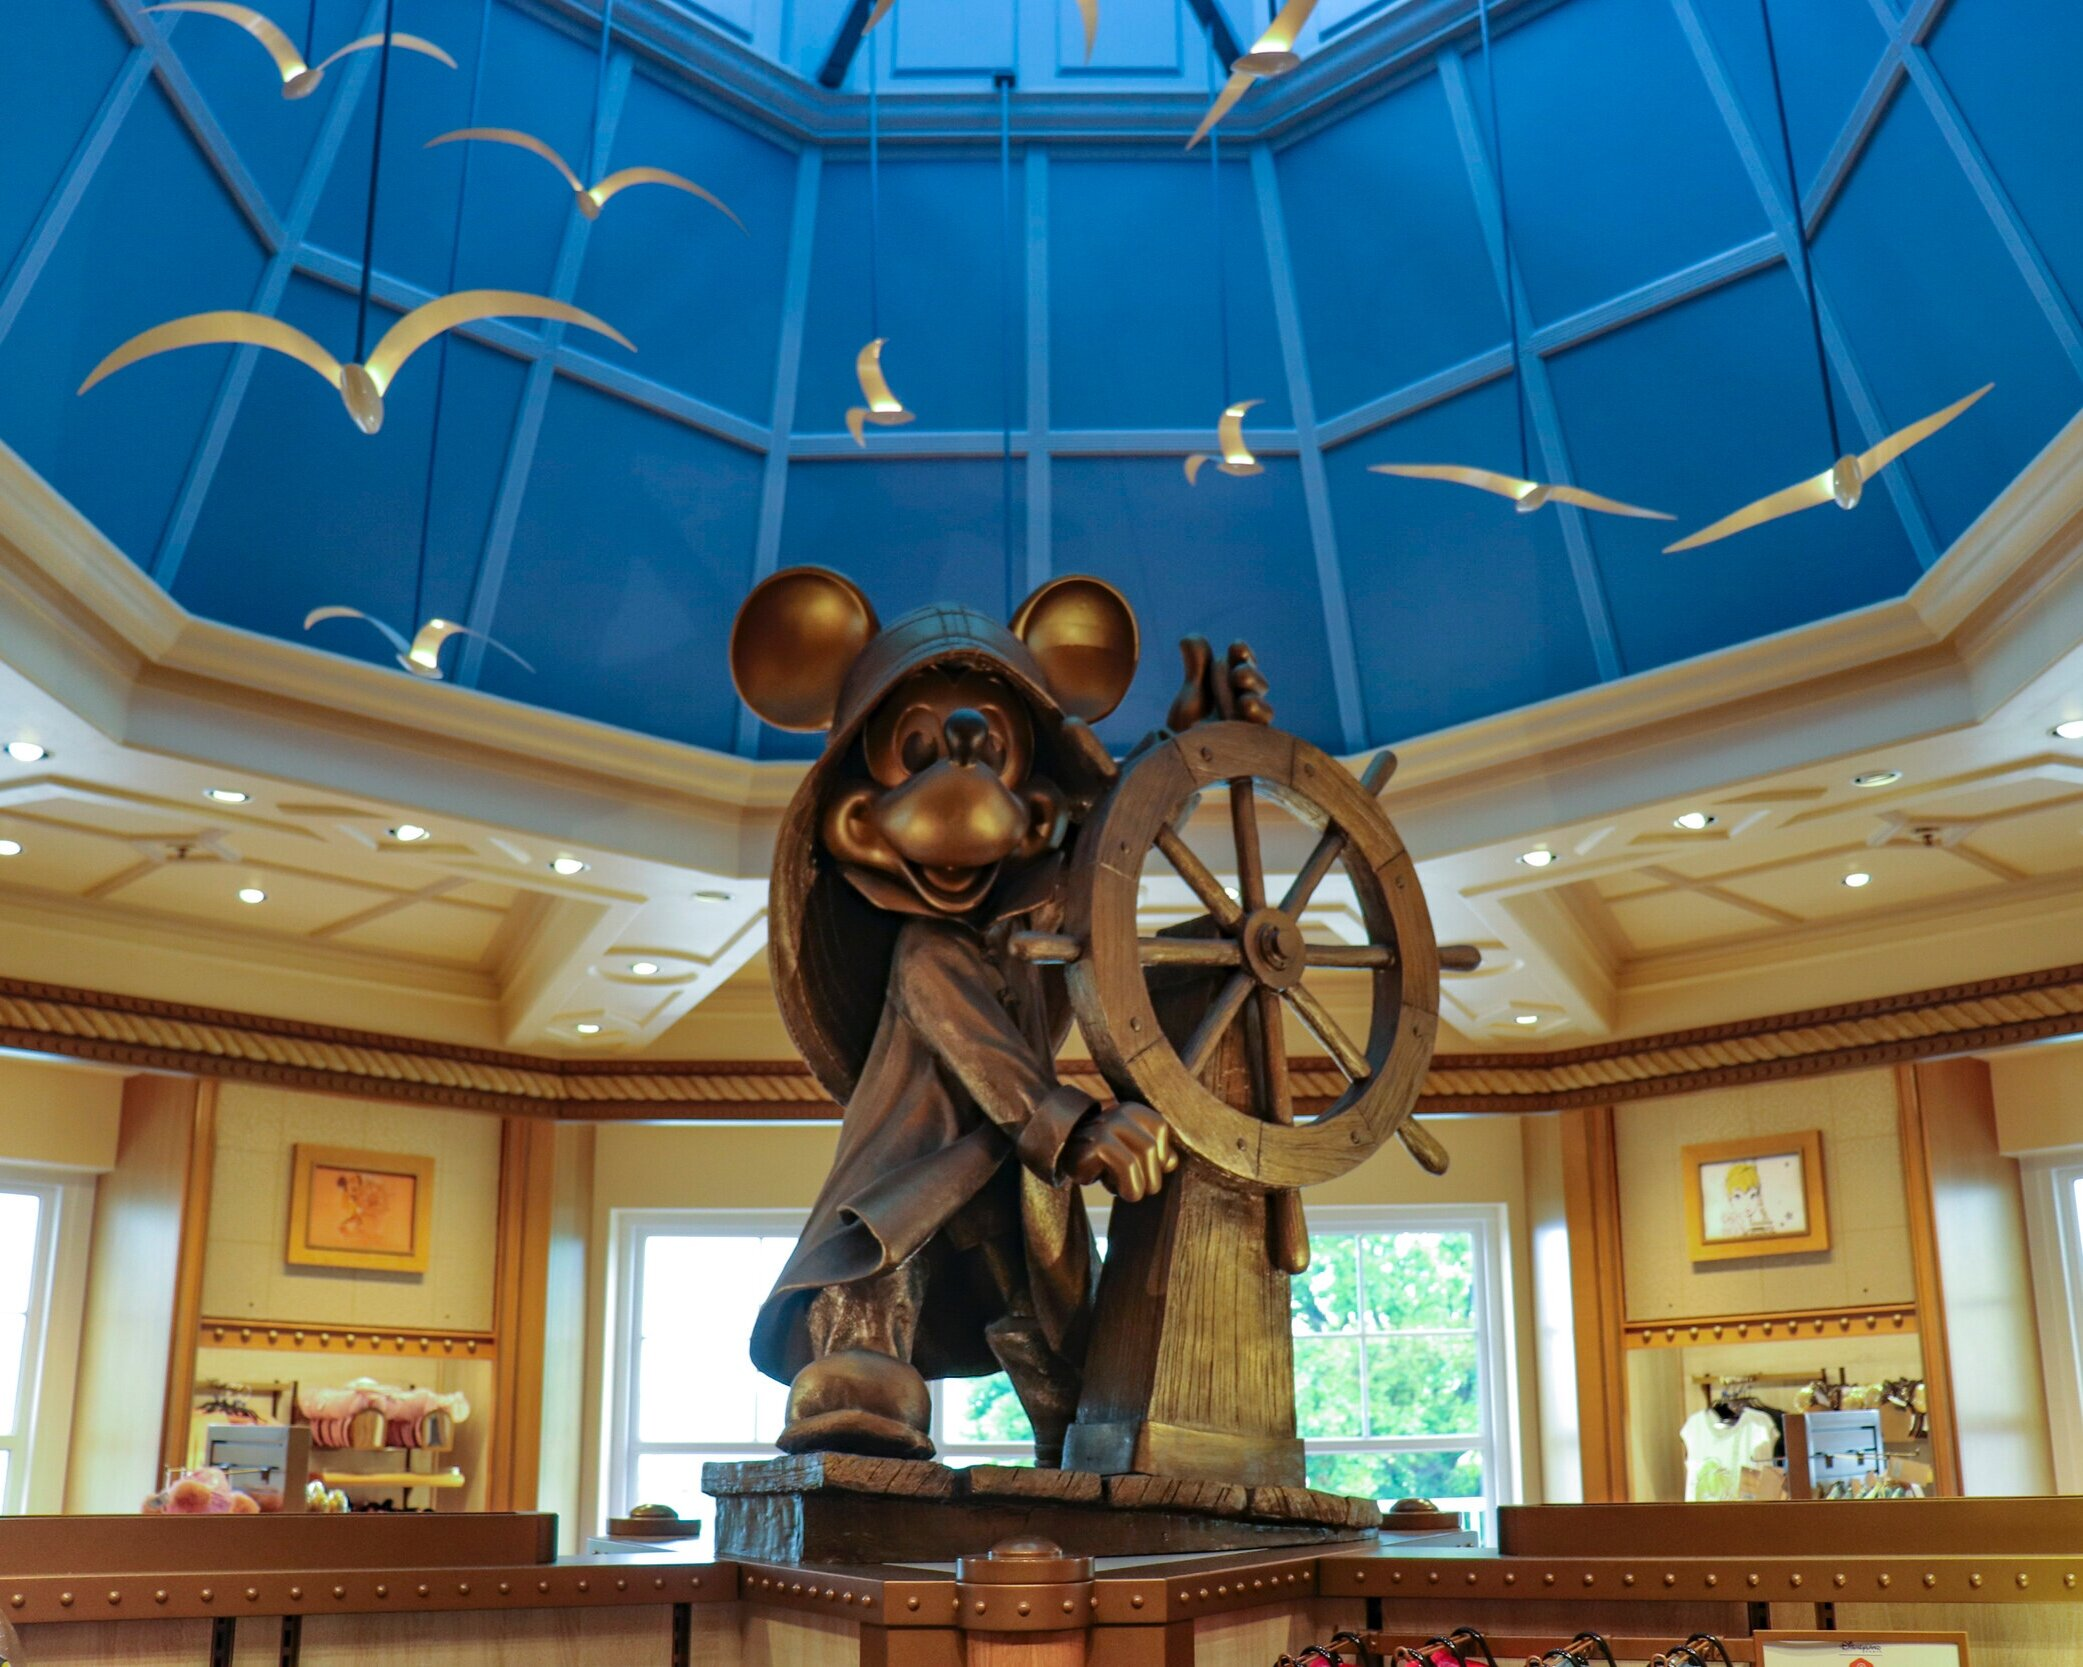 A Mickey statue in the gift shop.